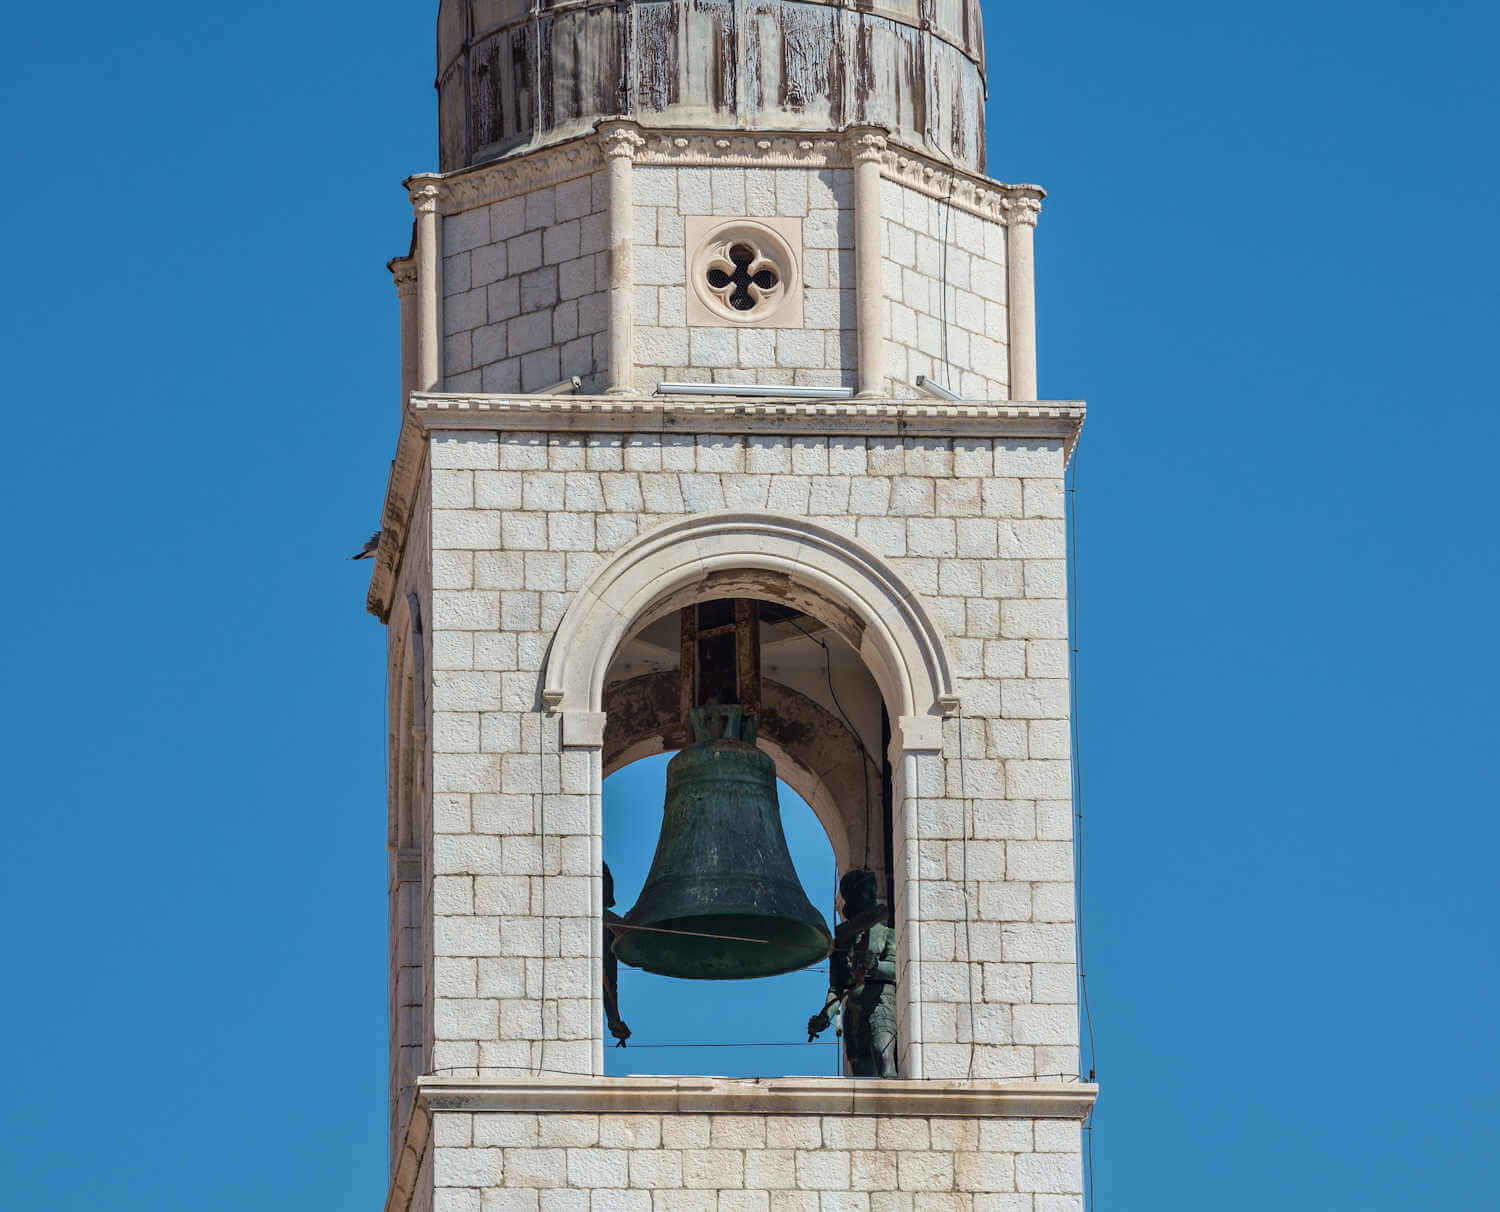 Clock tower in old town dubrovnik